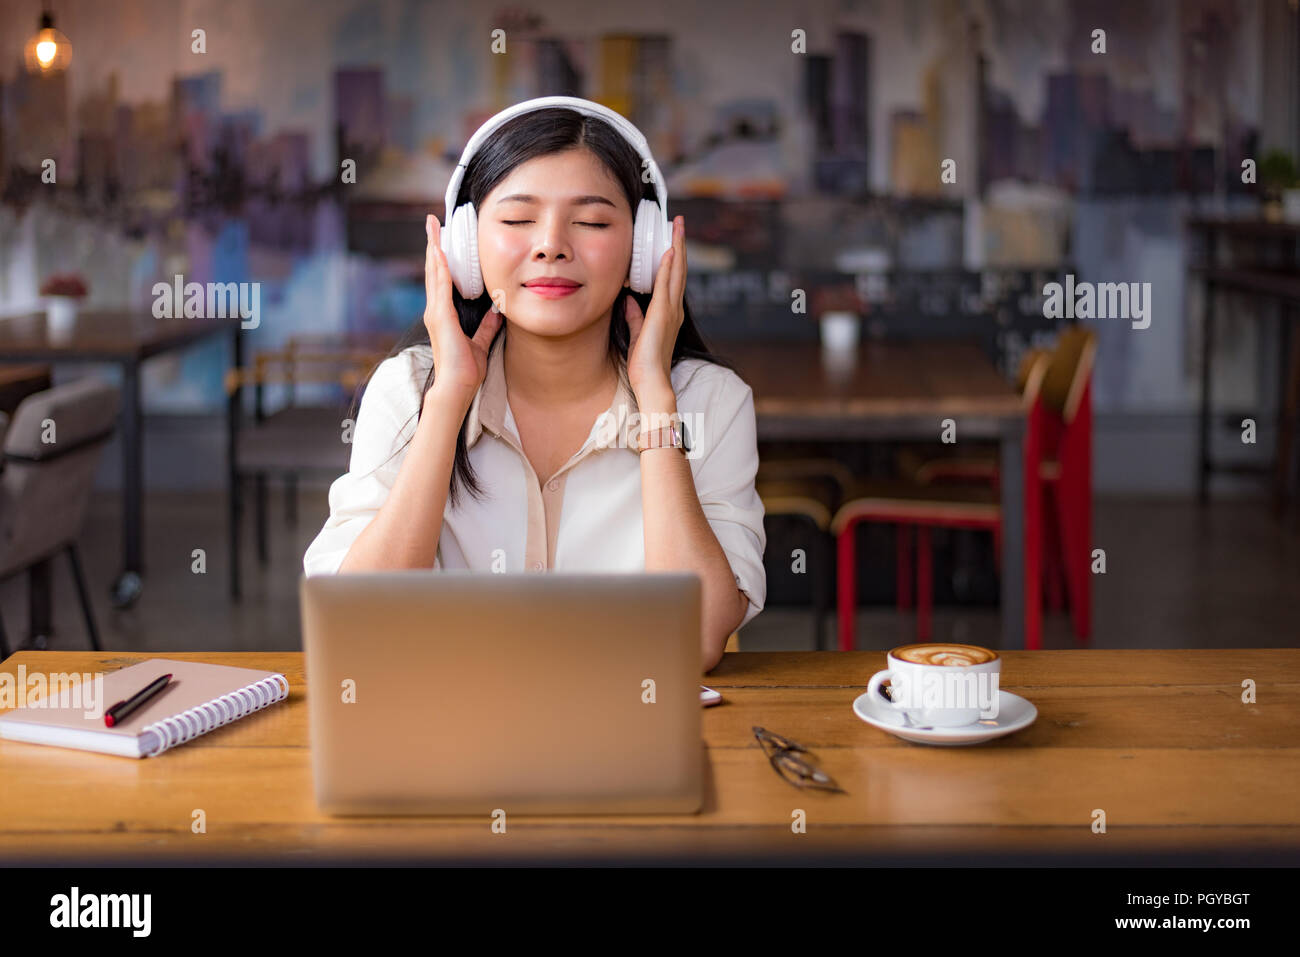 Beautiful Asian woman relaxing and listening to music in cafe with laptop computer and coffee cup. People and lifestyles concept. Freelance happy work - Stock Image